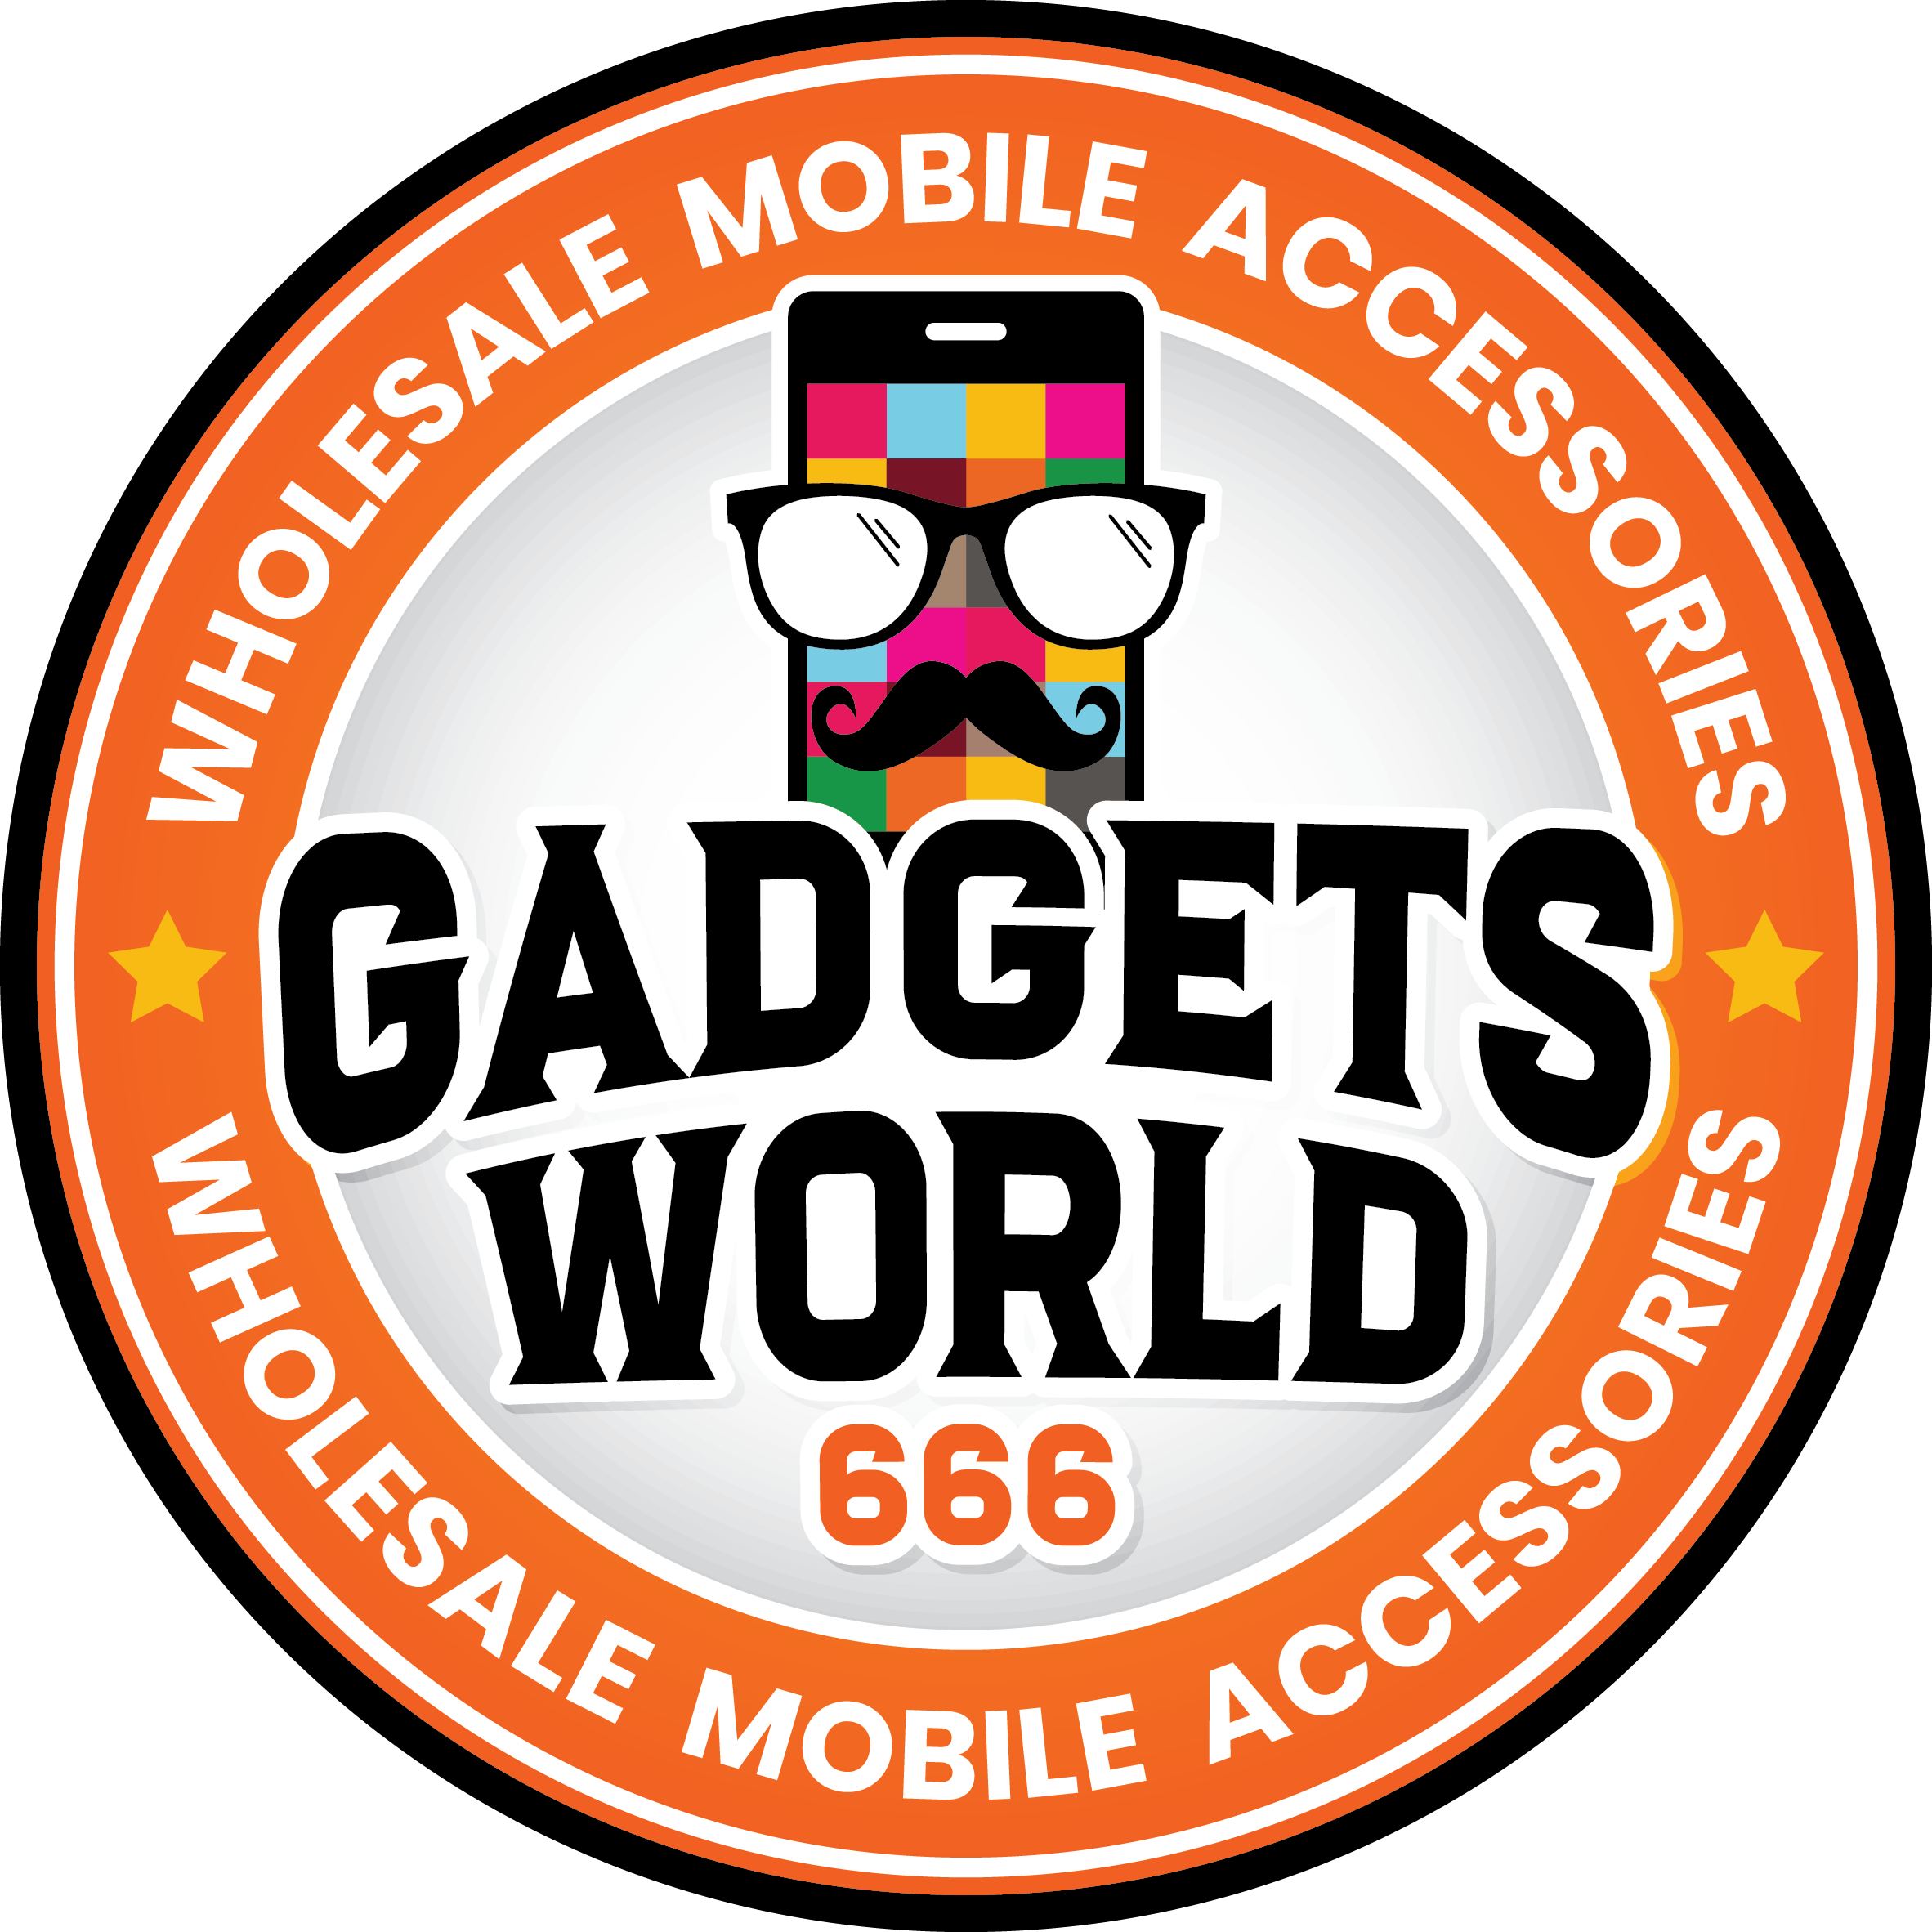 Gadgets World 666